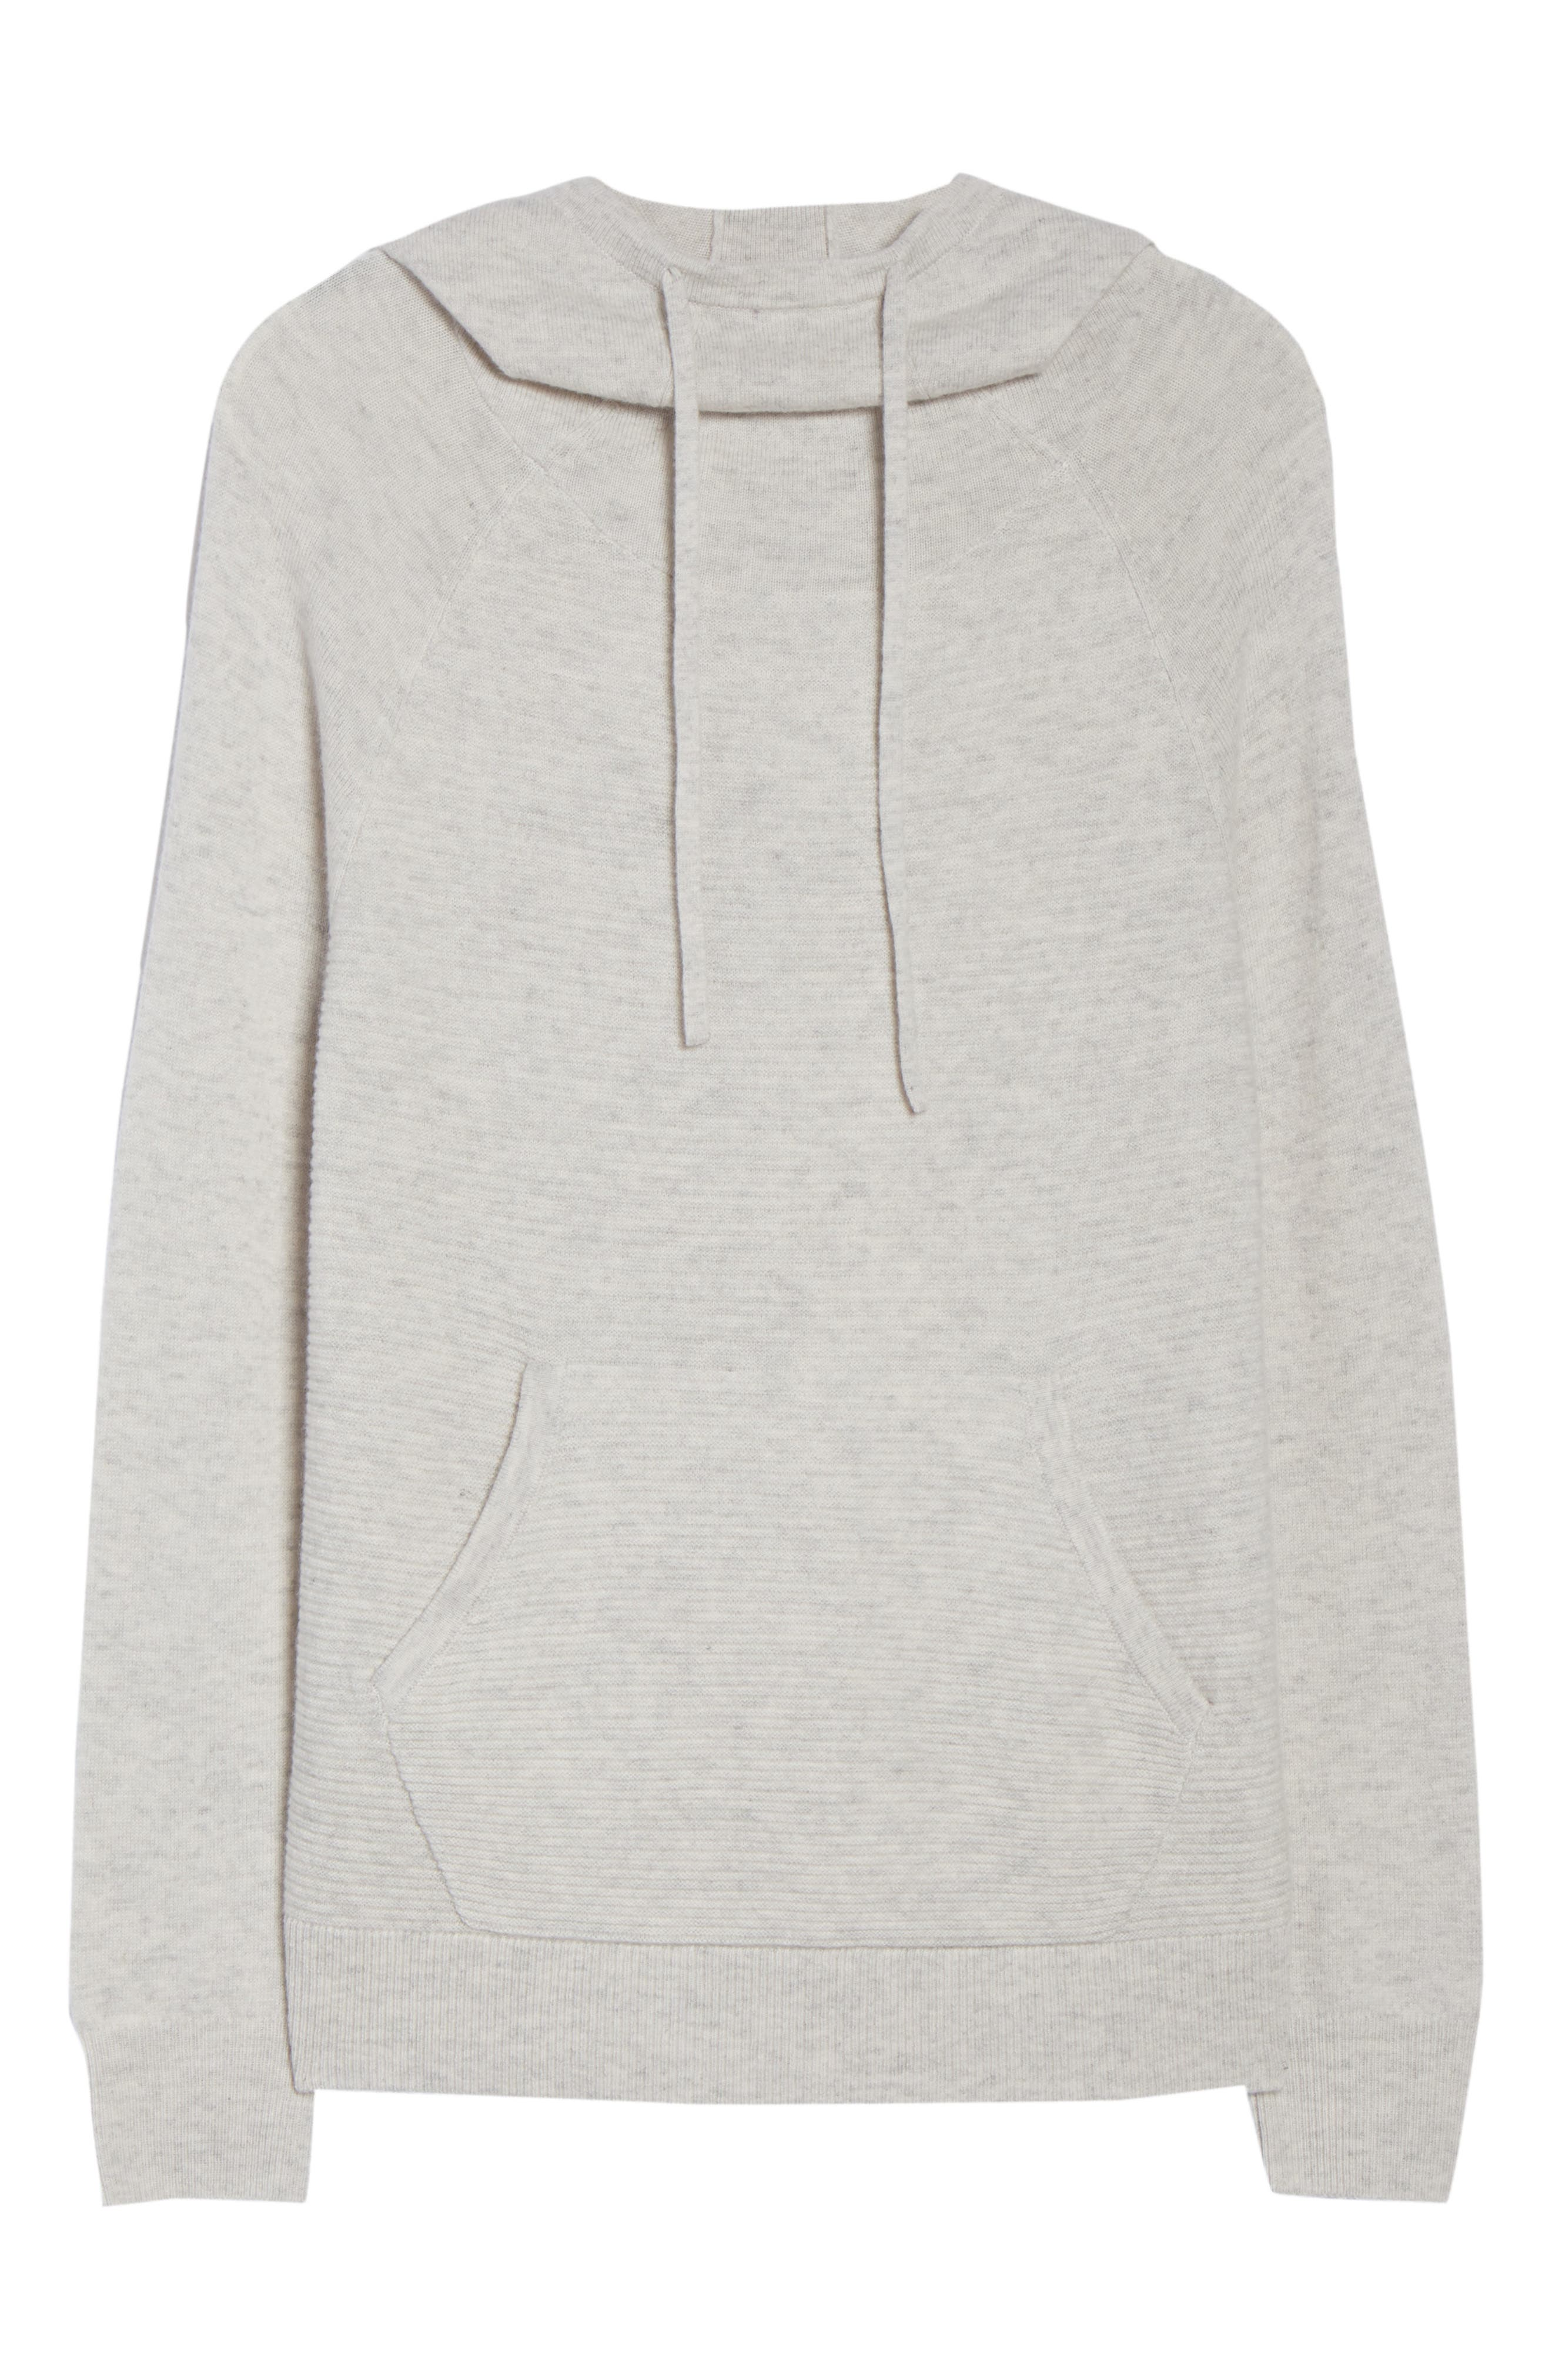 Cashmere and Wool Hoodie,                             Alternate thumbnail 7, color,                             022